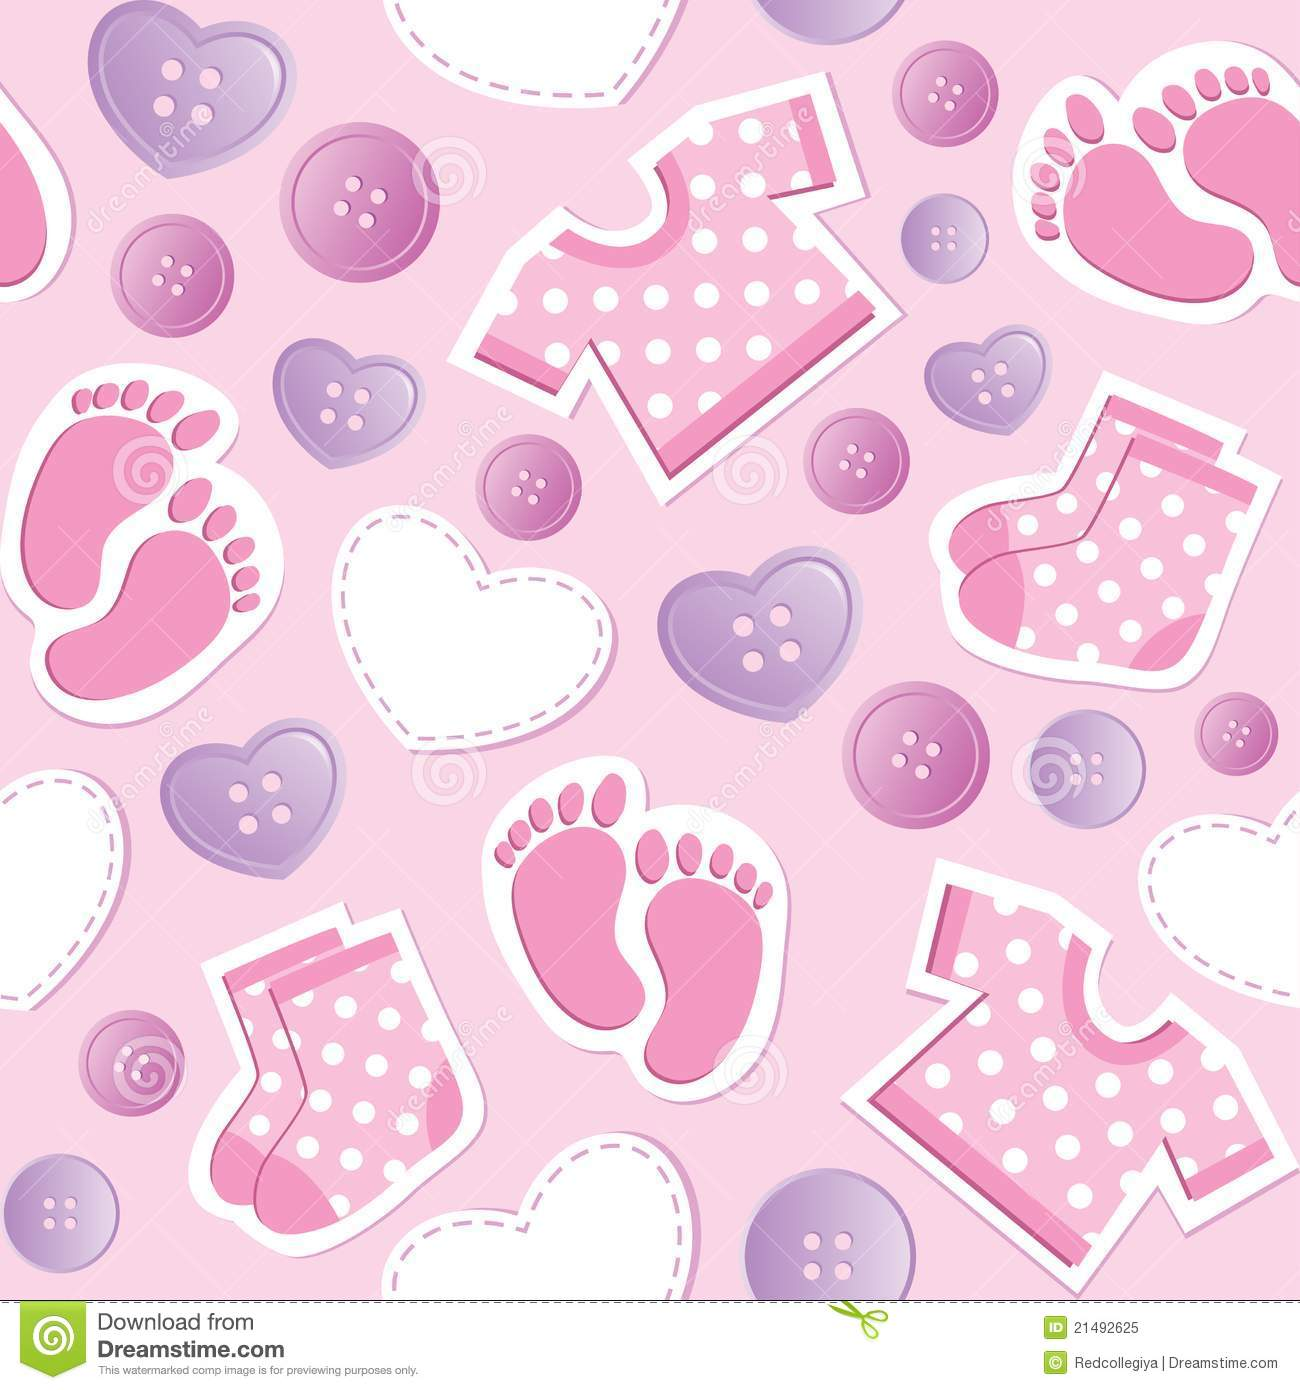 Baby Pink Seamless Pattern Royalty Free Stock Photo  Image: 21492625